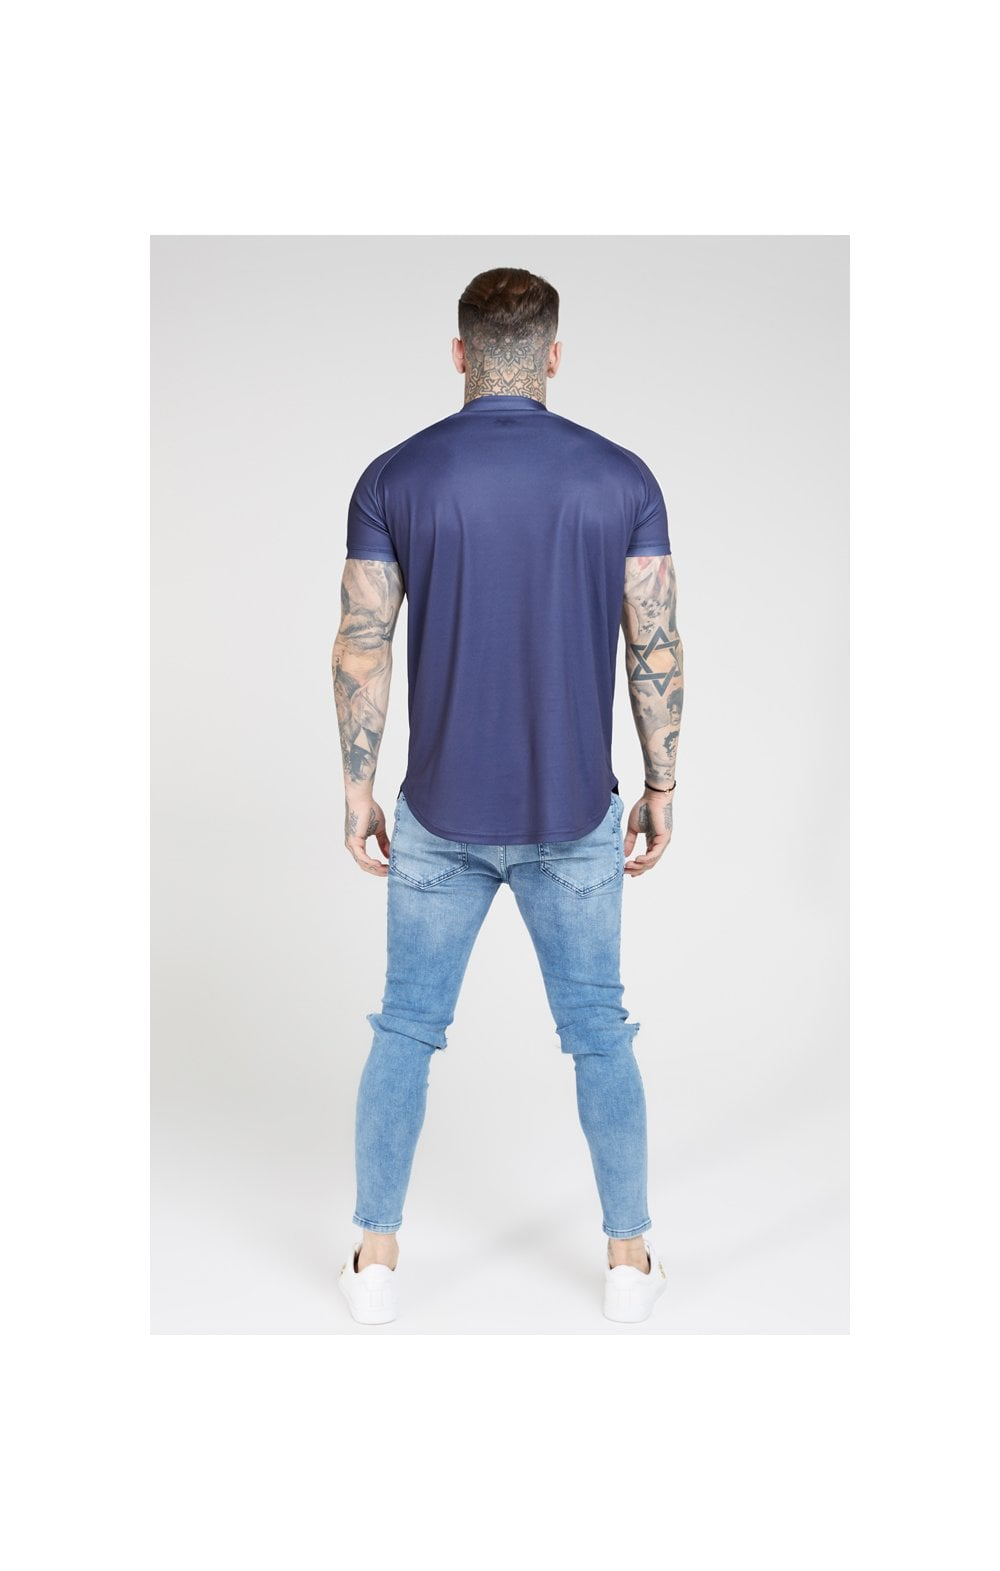 SikSilk S/S Baseball Tee – Navy (5)